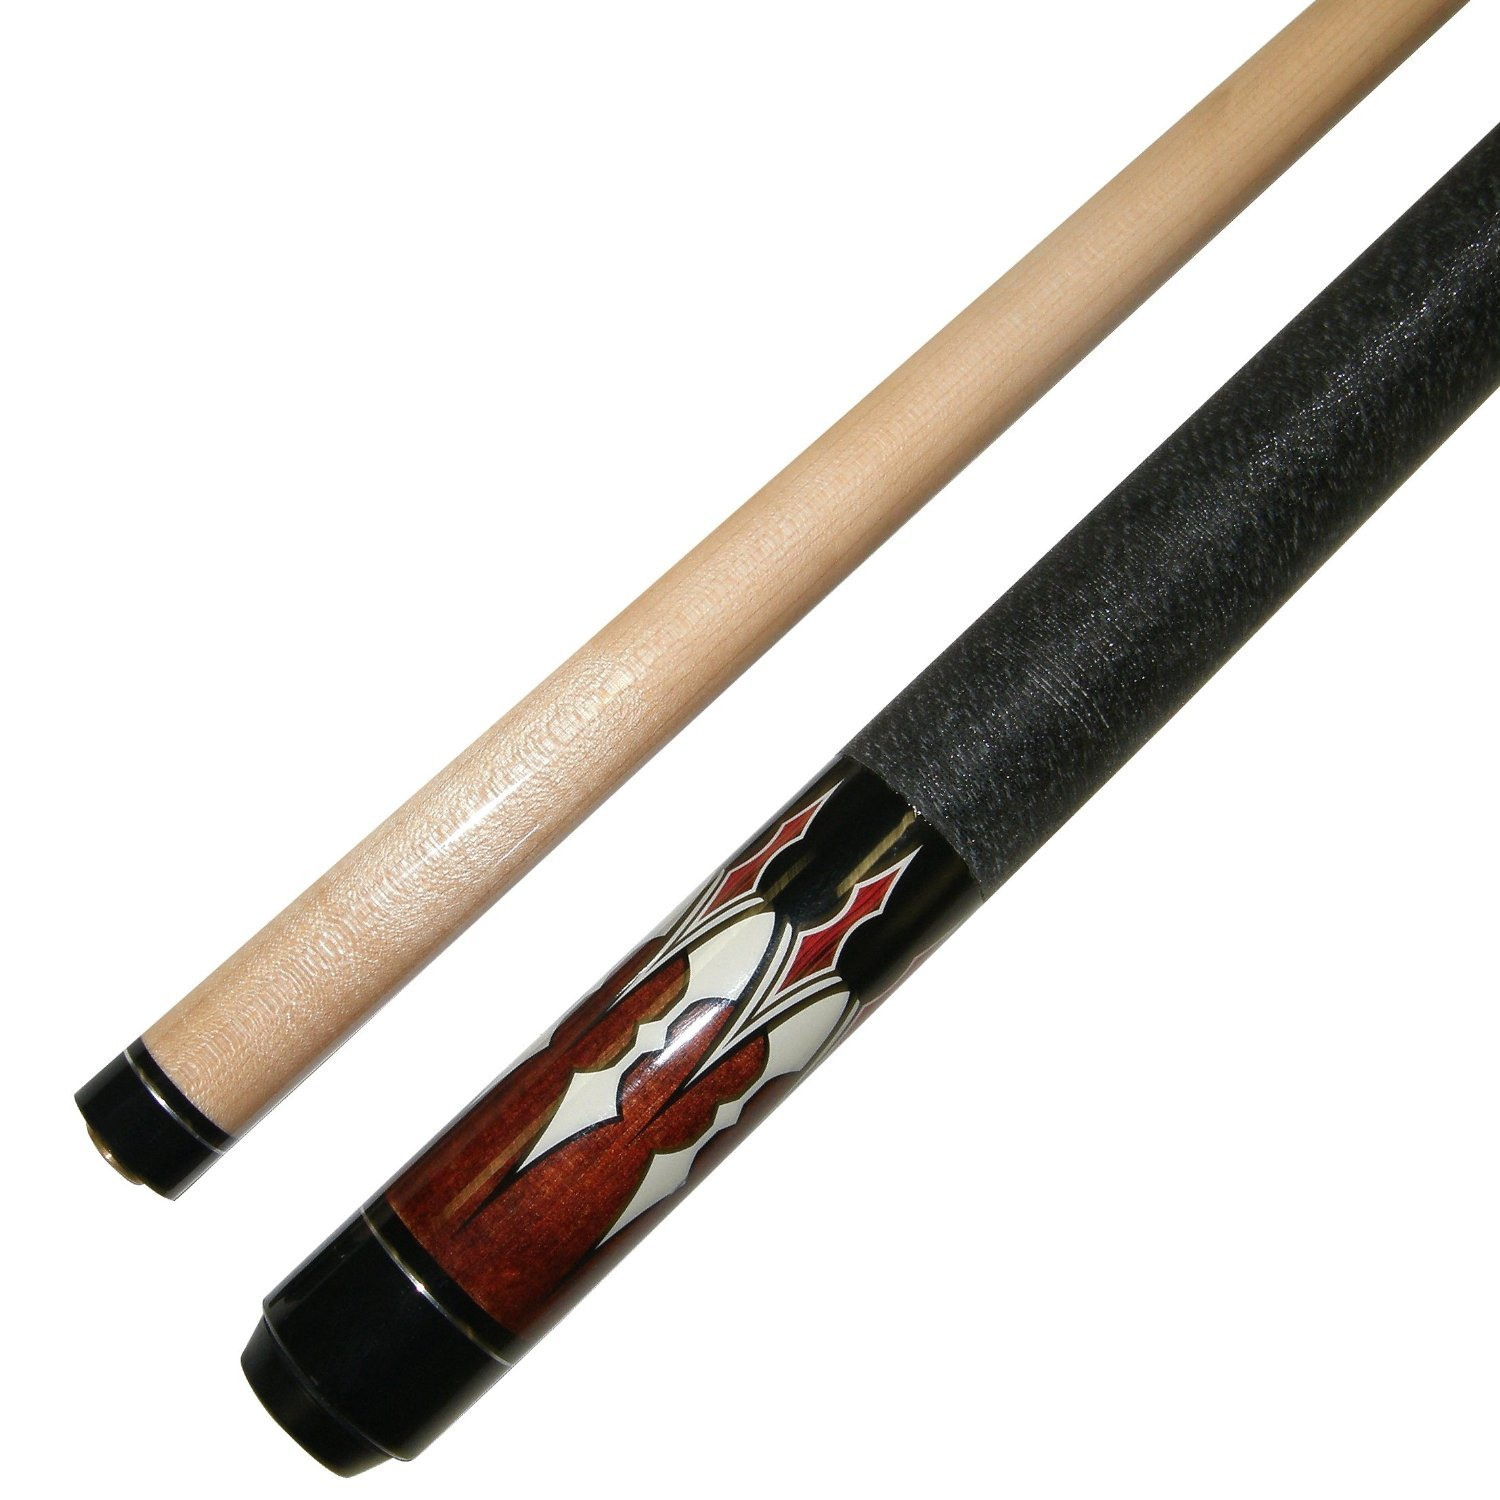 "Short 48"" 2 Piece Hardwood Maple Pool Cue - Billiard Stick Several Colors To Choose From 18 Or 19 Ounce"